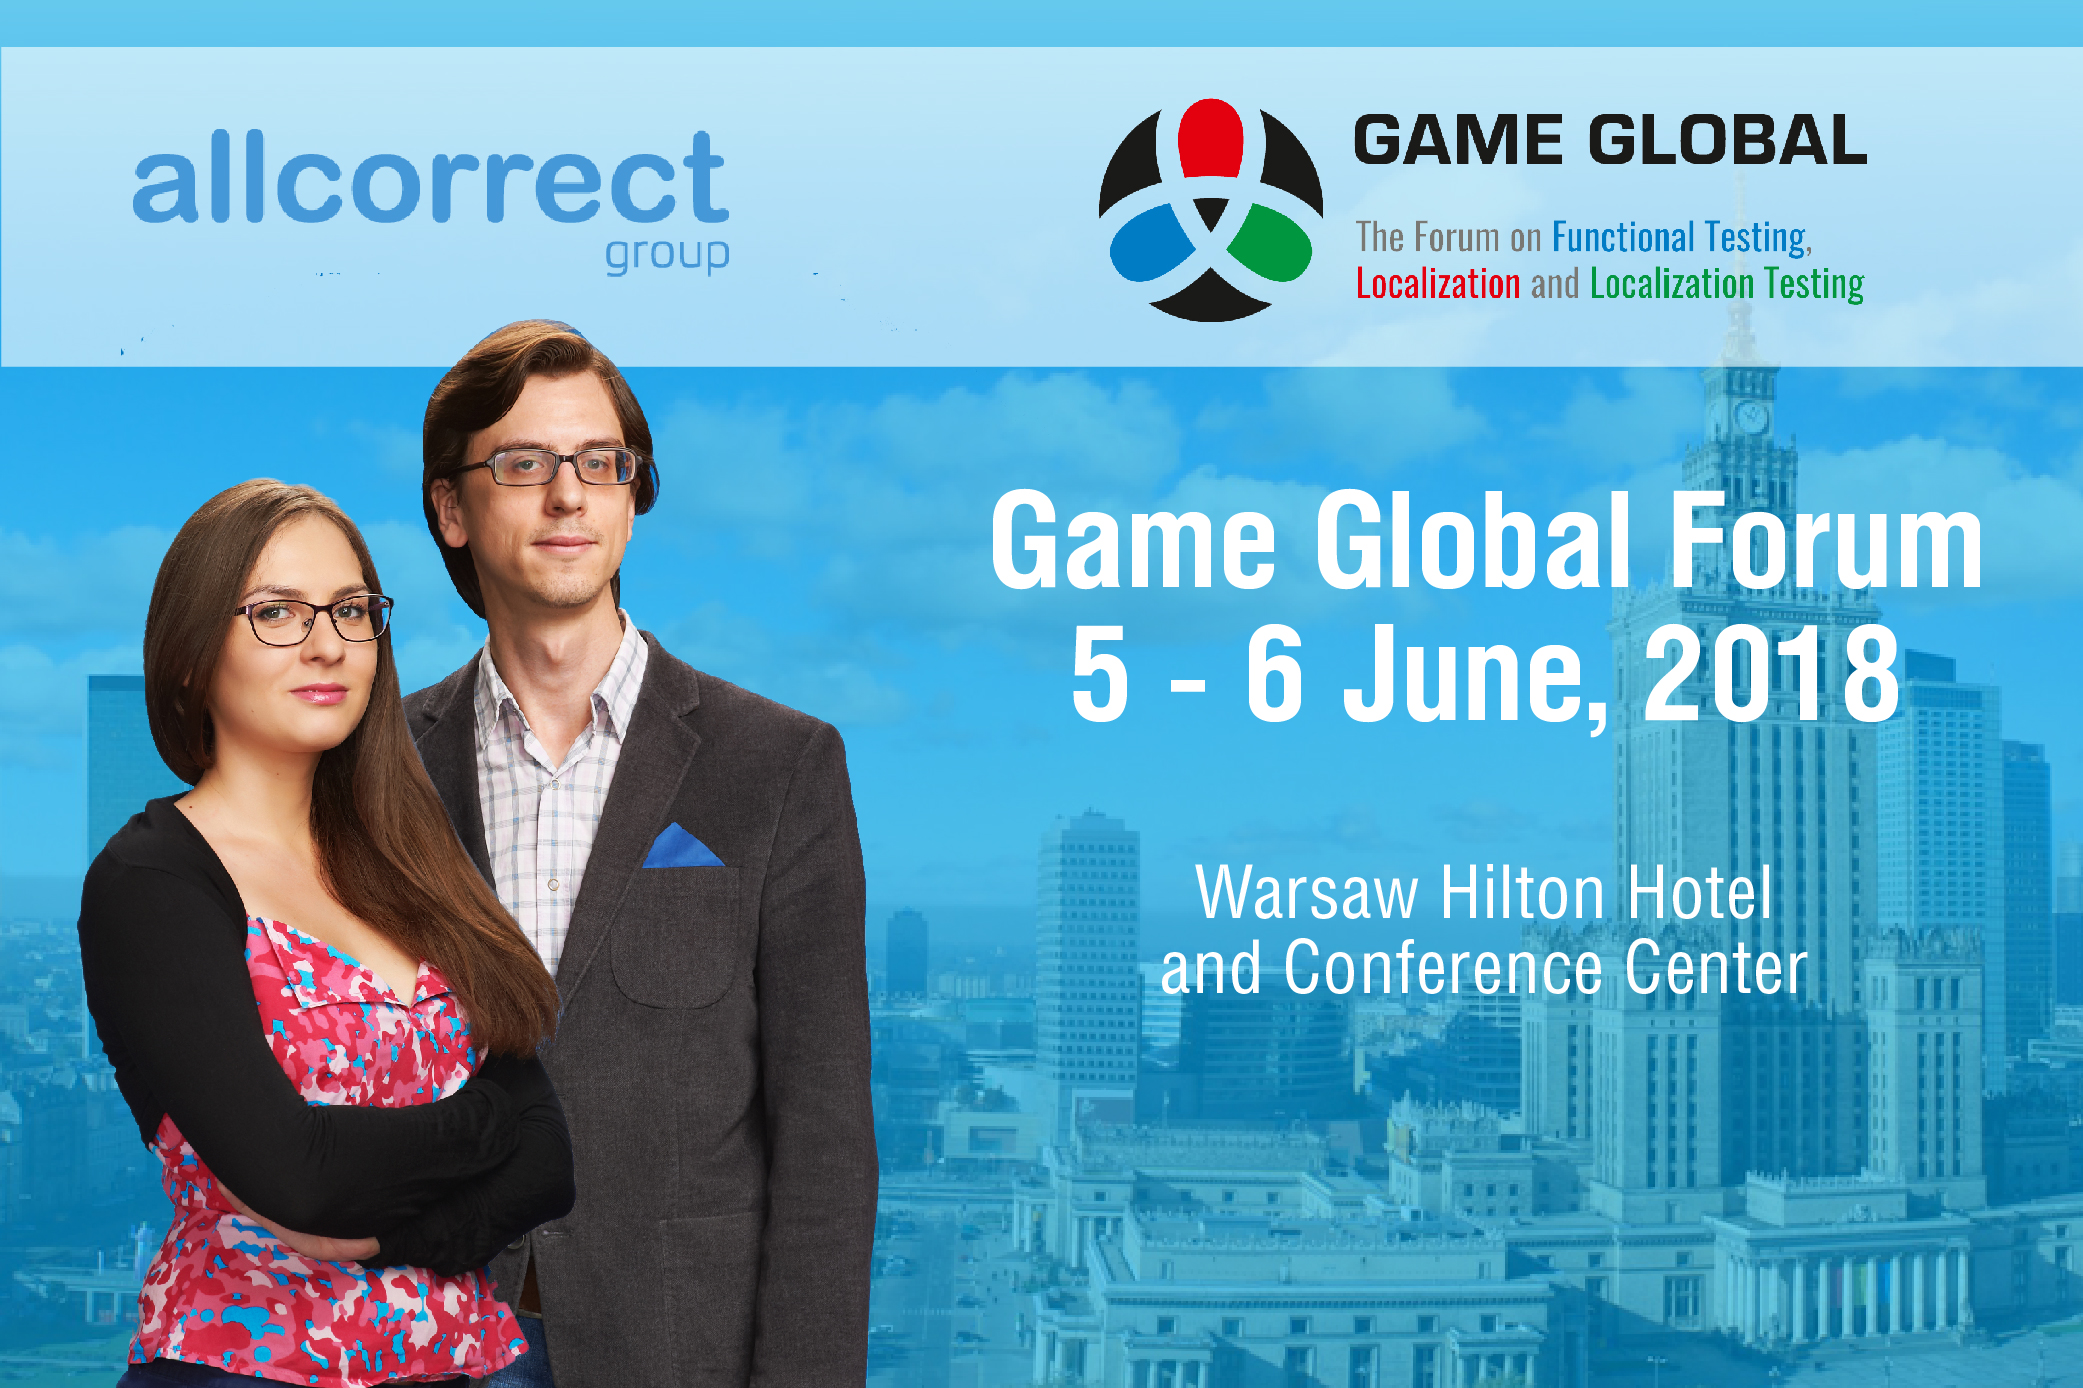 We invite you to attend Game Global Forum